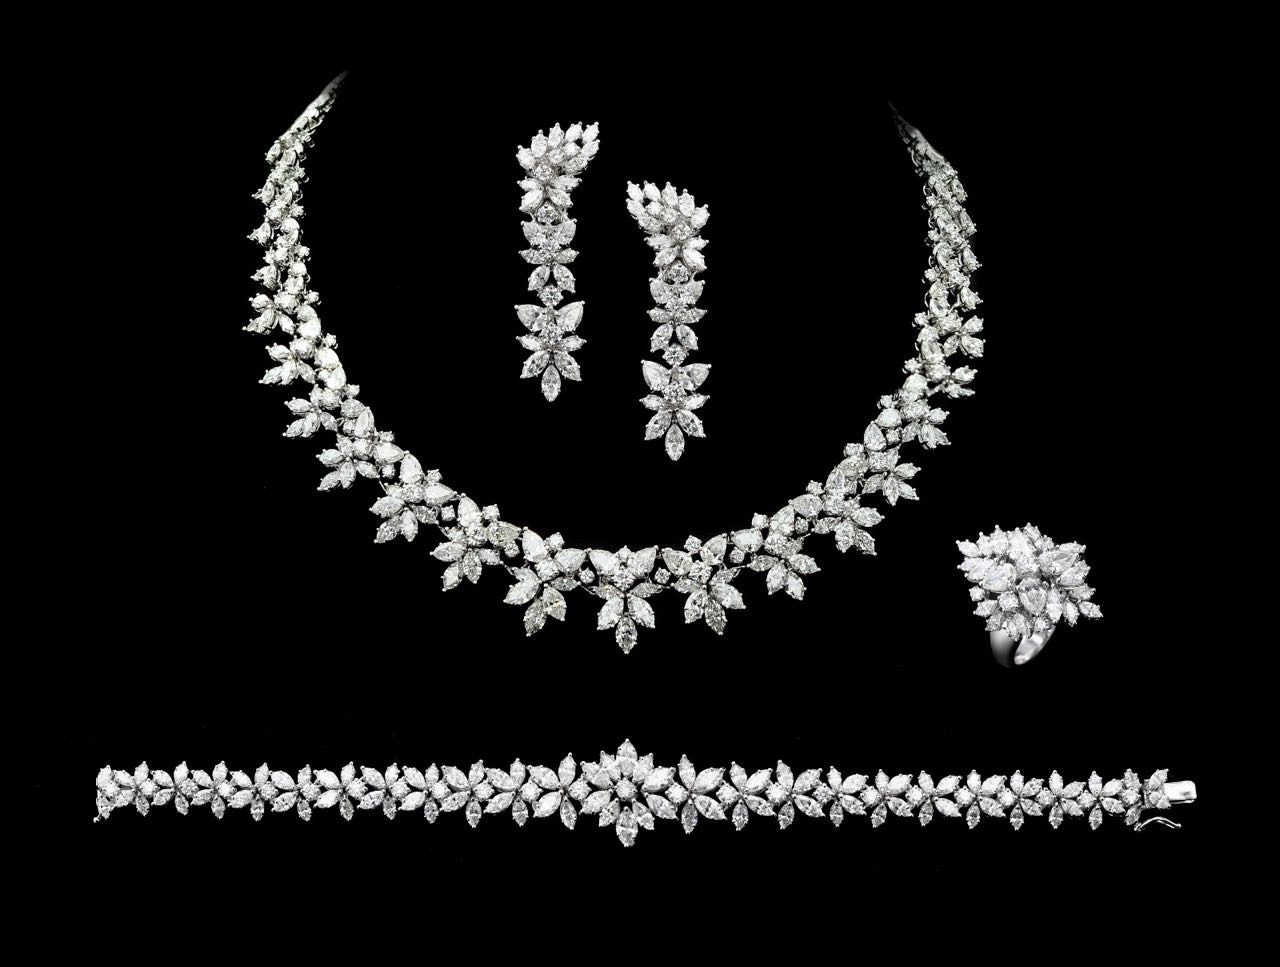 Diamond necklace, earrings, bracelet and ring set